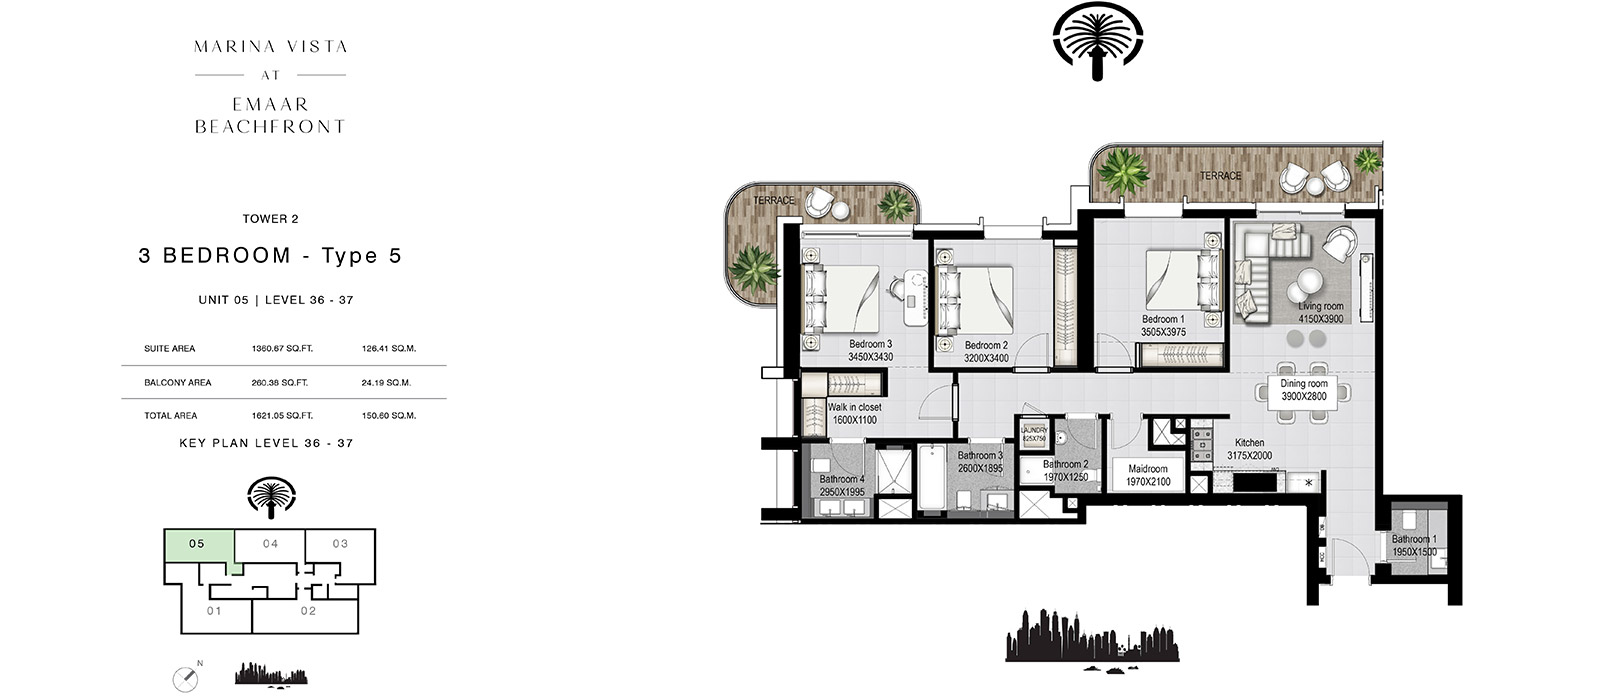 3 Bedroom Tower 2, Type 5, Size 1621.05 sq.ft.